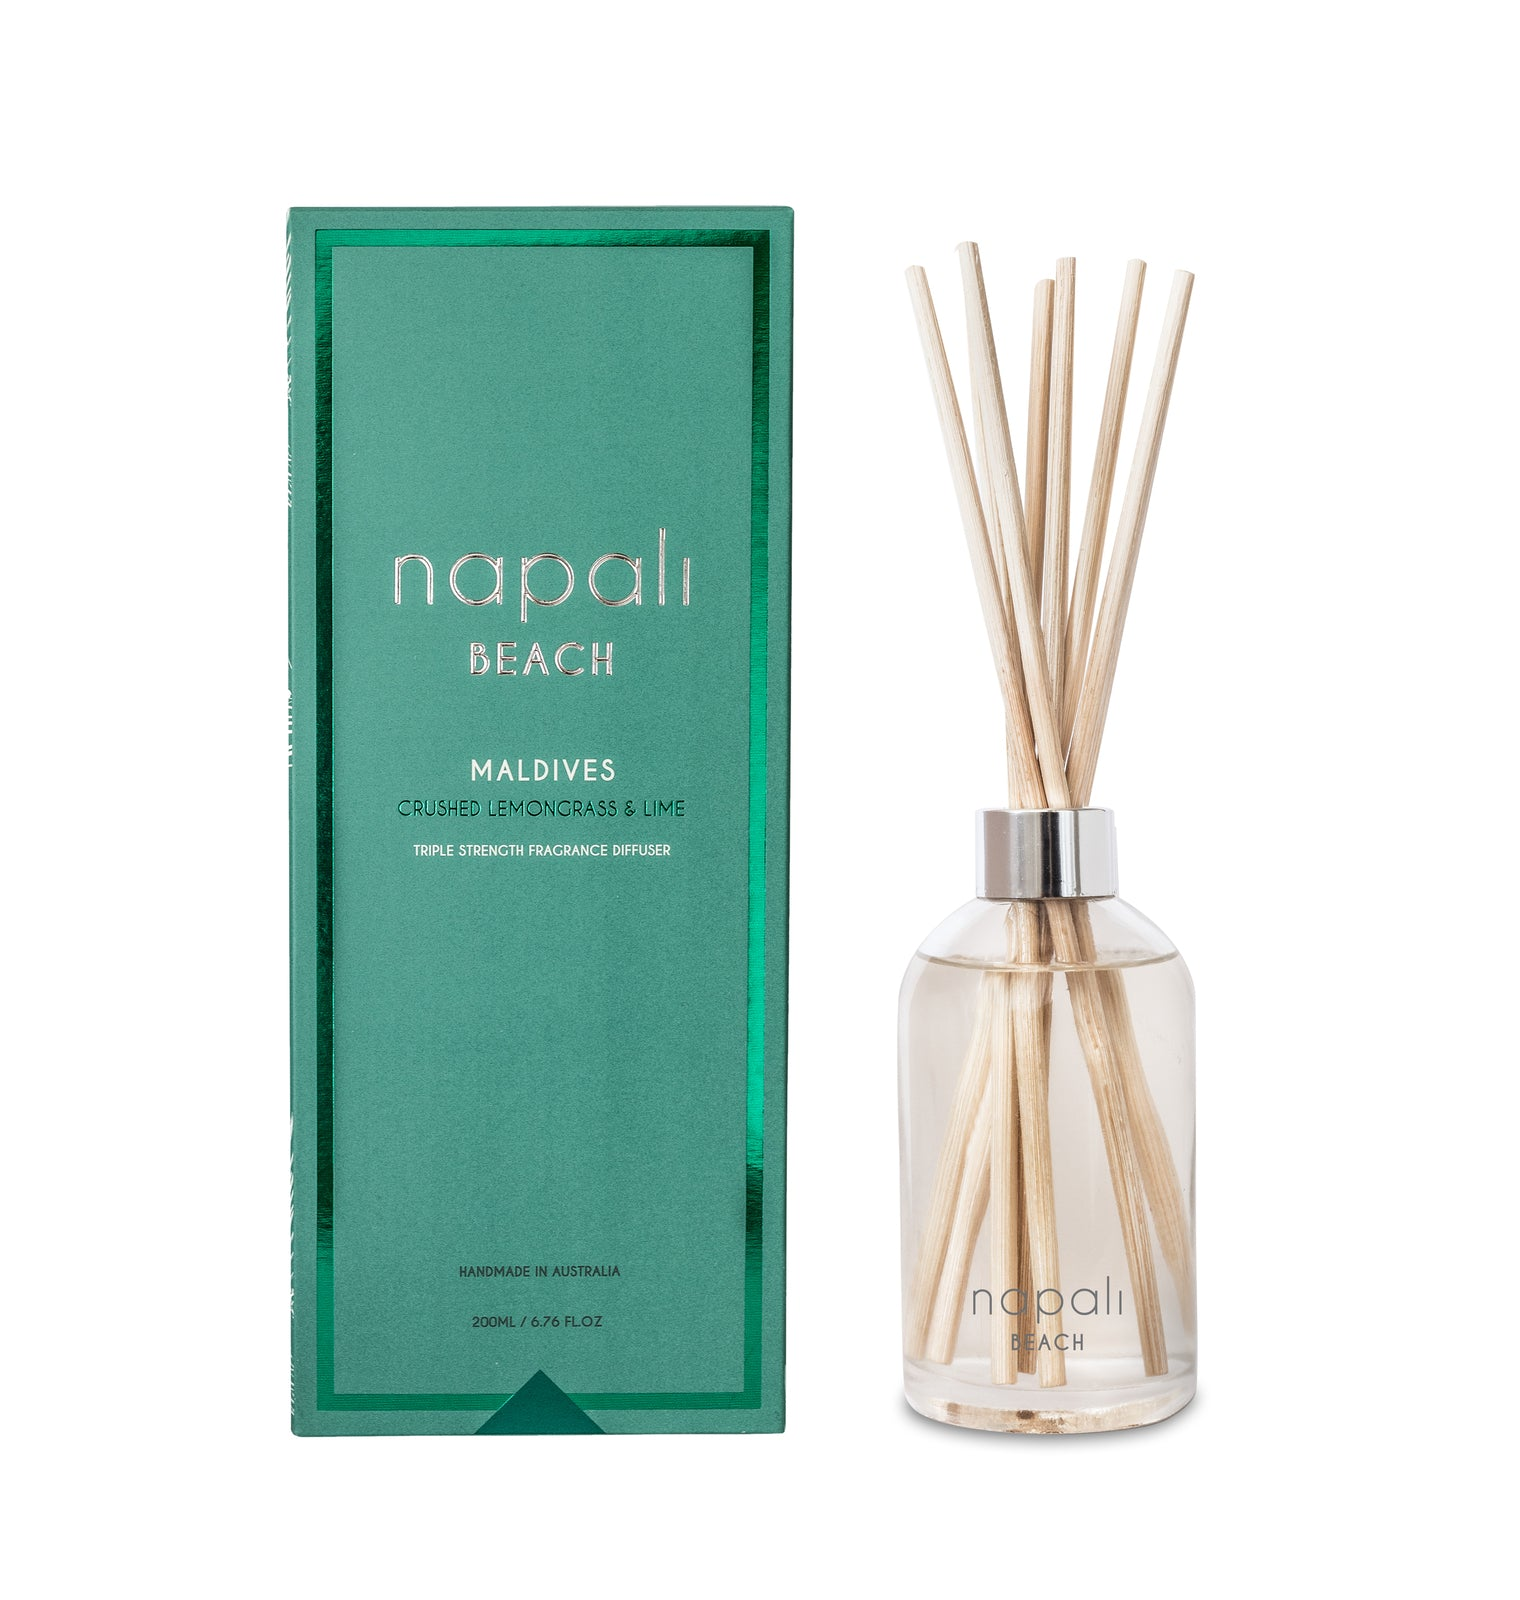 Maldives Crushed Lemongrass & Lime Reed Diffuser